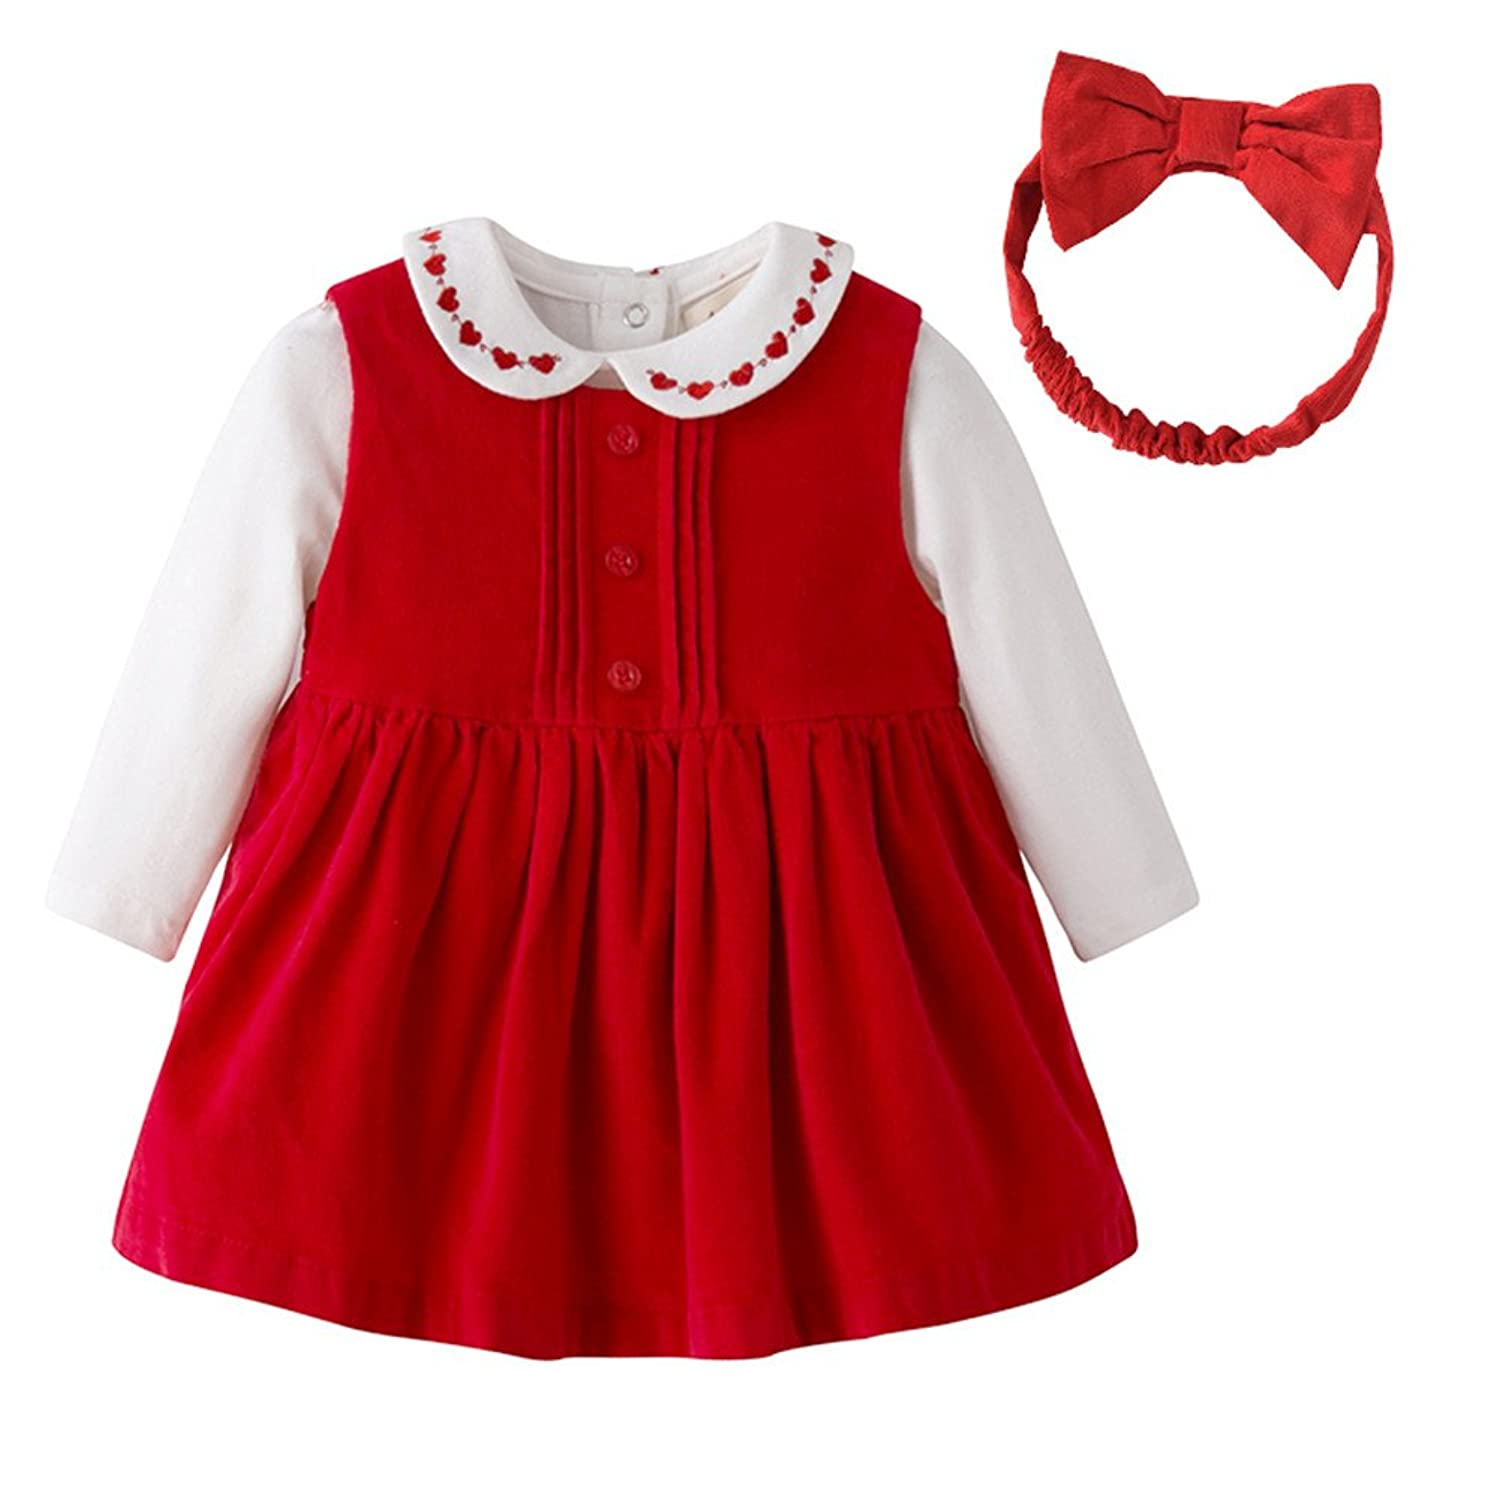 632b50e085c2 Material :100% cotton baby bodysuit, soft Corduroy for Red Dress Hand Wash  Better Simple trendy outfits, make your little girl look attractive and ...